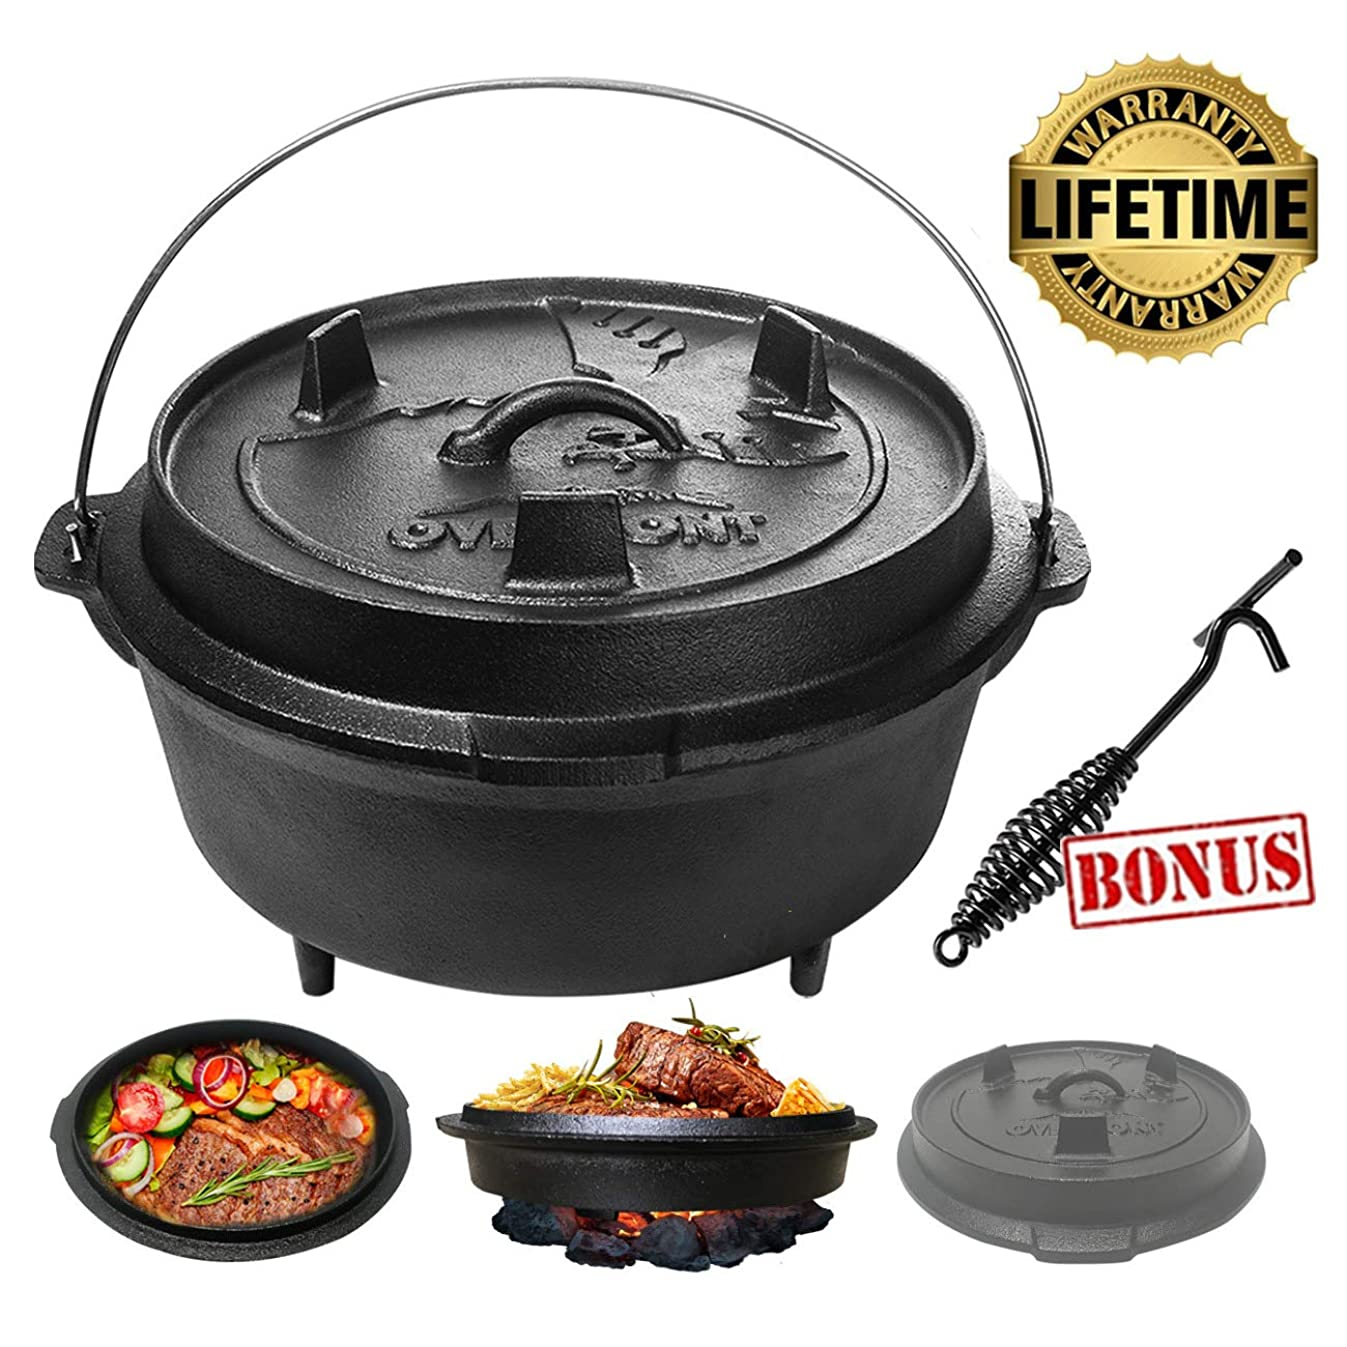 Overmont All-Round Dutch Oven【Dual Function Lid Skillet】【with Lid Lifter】【Pre Seasoned】 Cast Iron Dutch Oven Pot Handle for Camping Cooking BBQ Baking 6 Quart / 9 Quart (6 Quart)